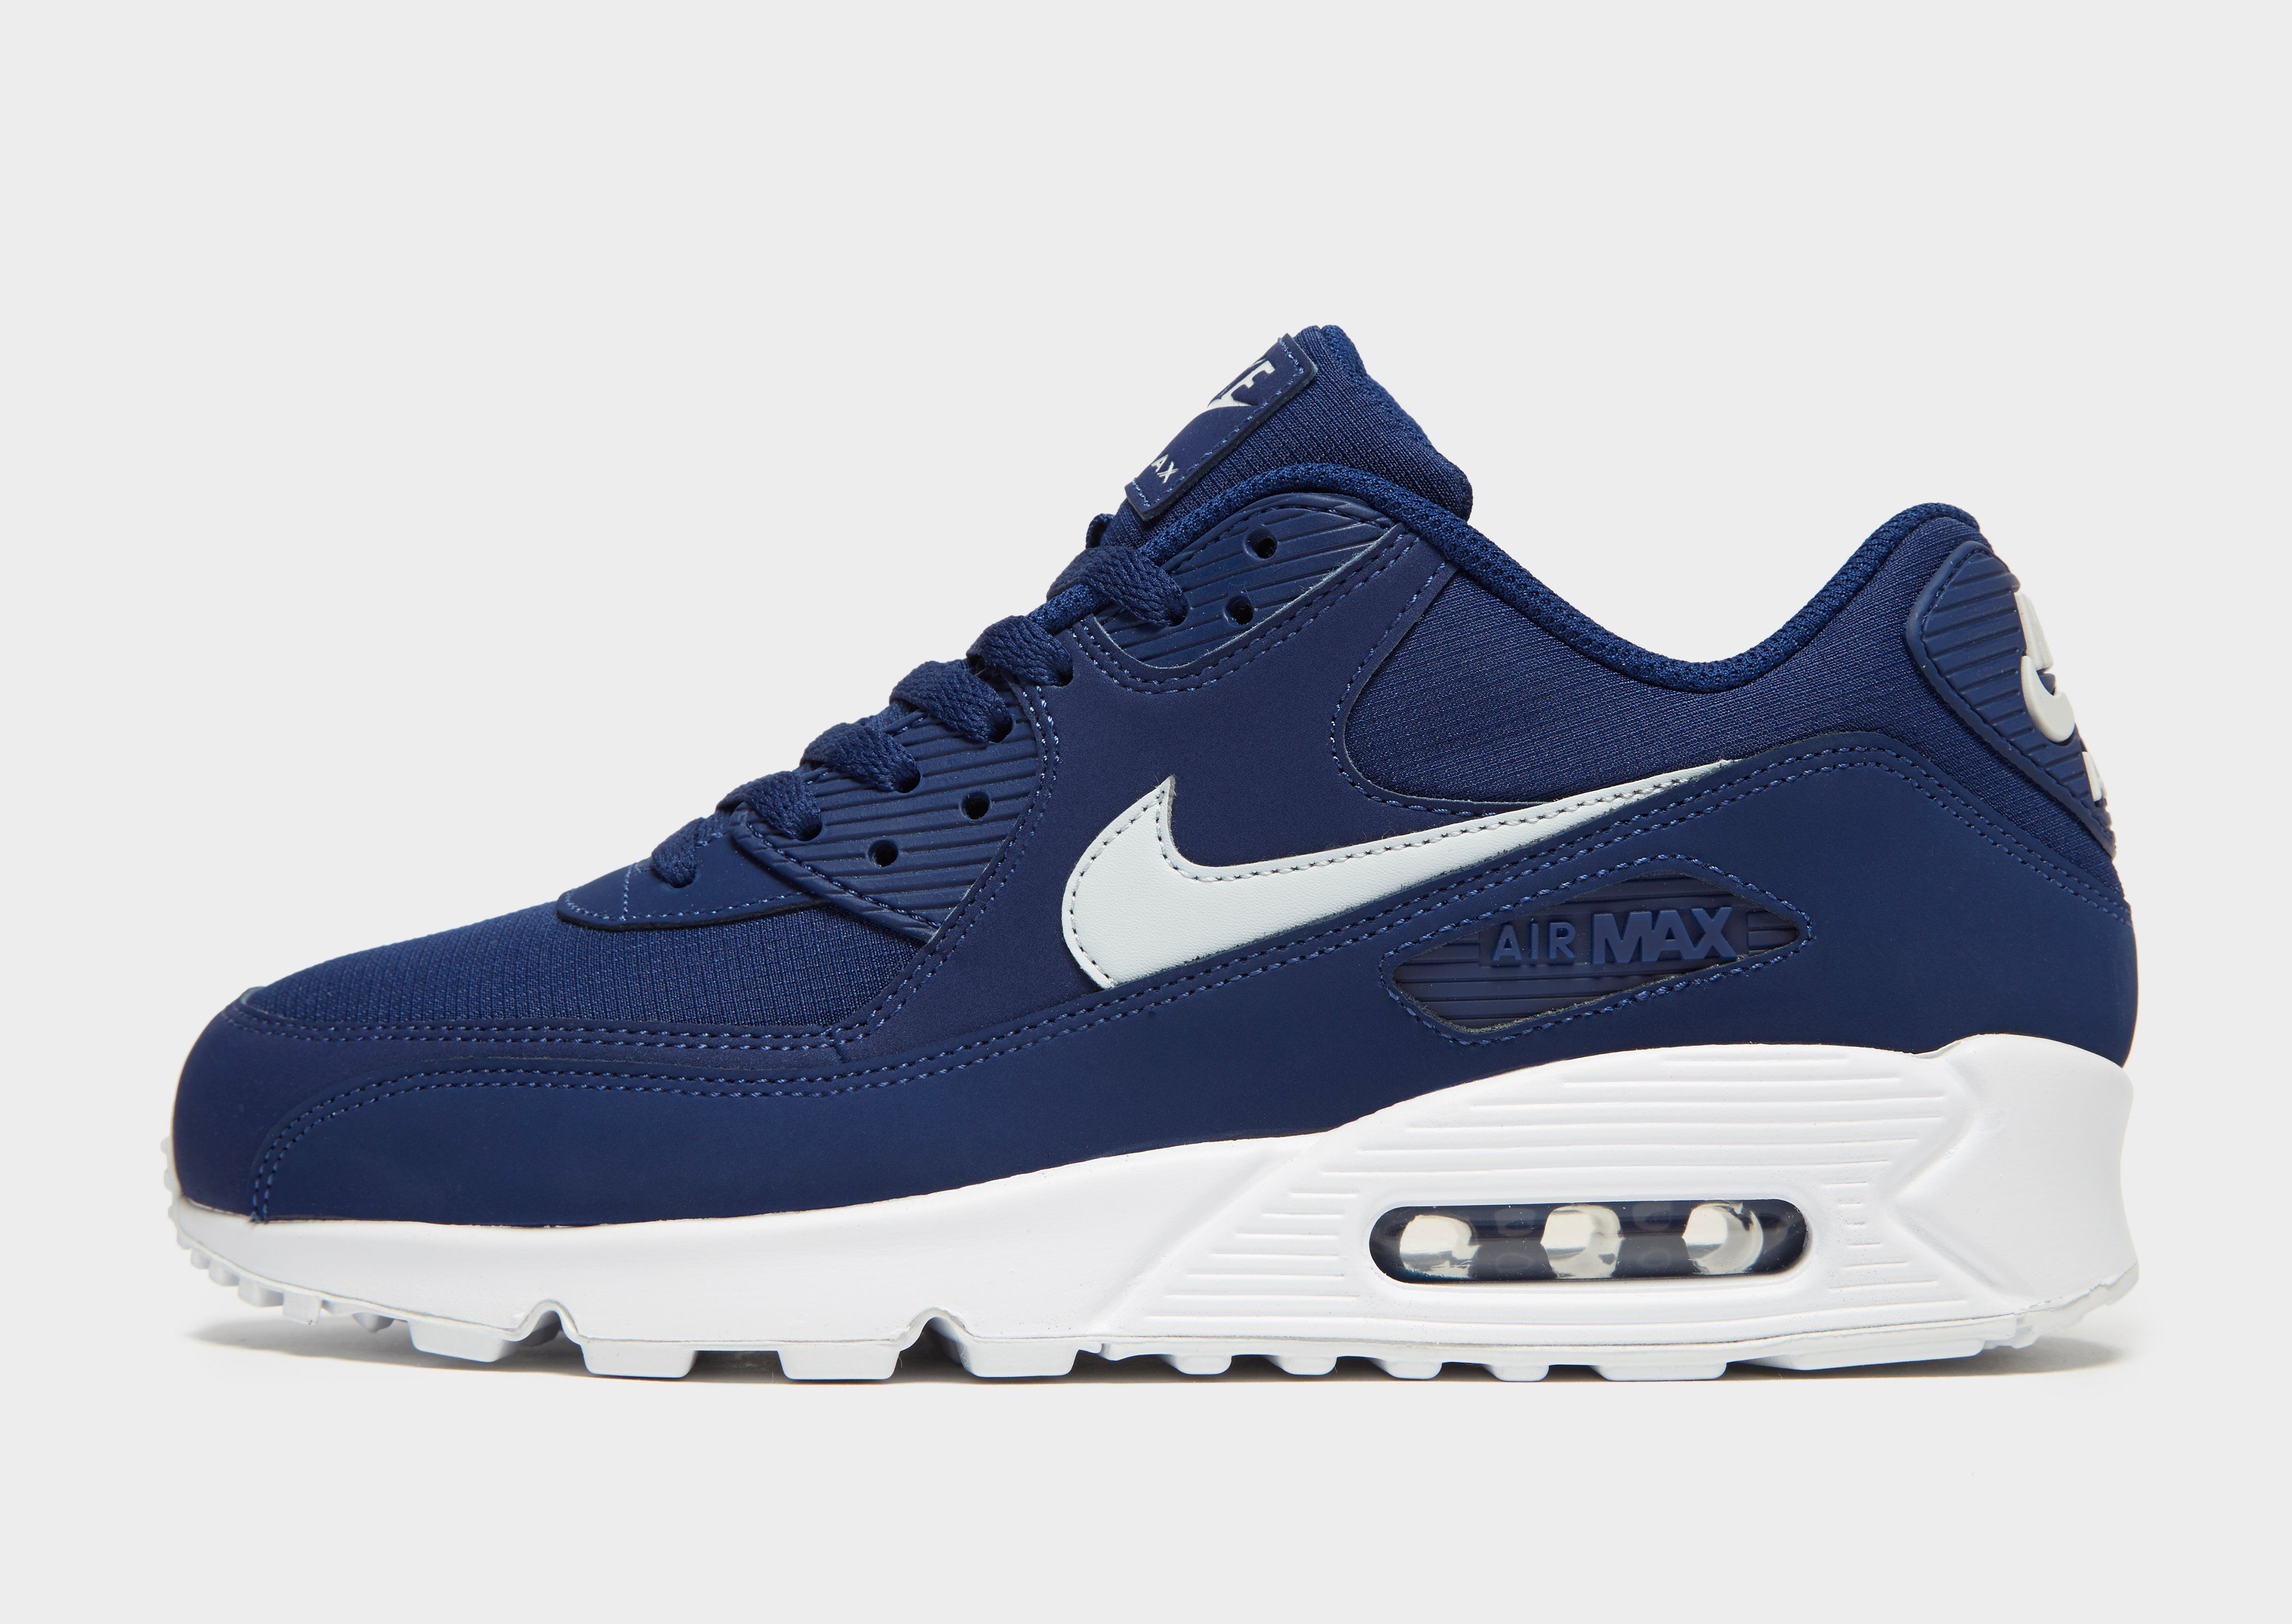 huge selection of 42ae1 d71ac Nike Air Max 90 Essential   JD Sports Ireland